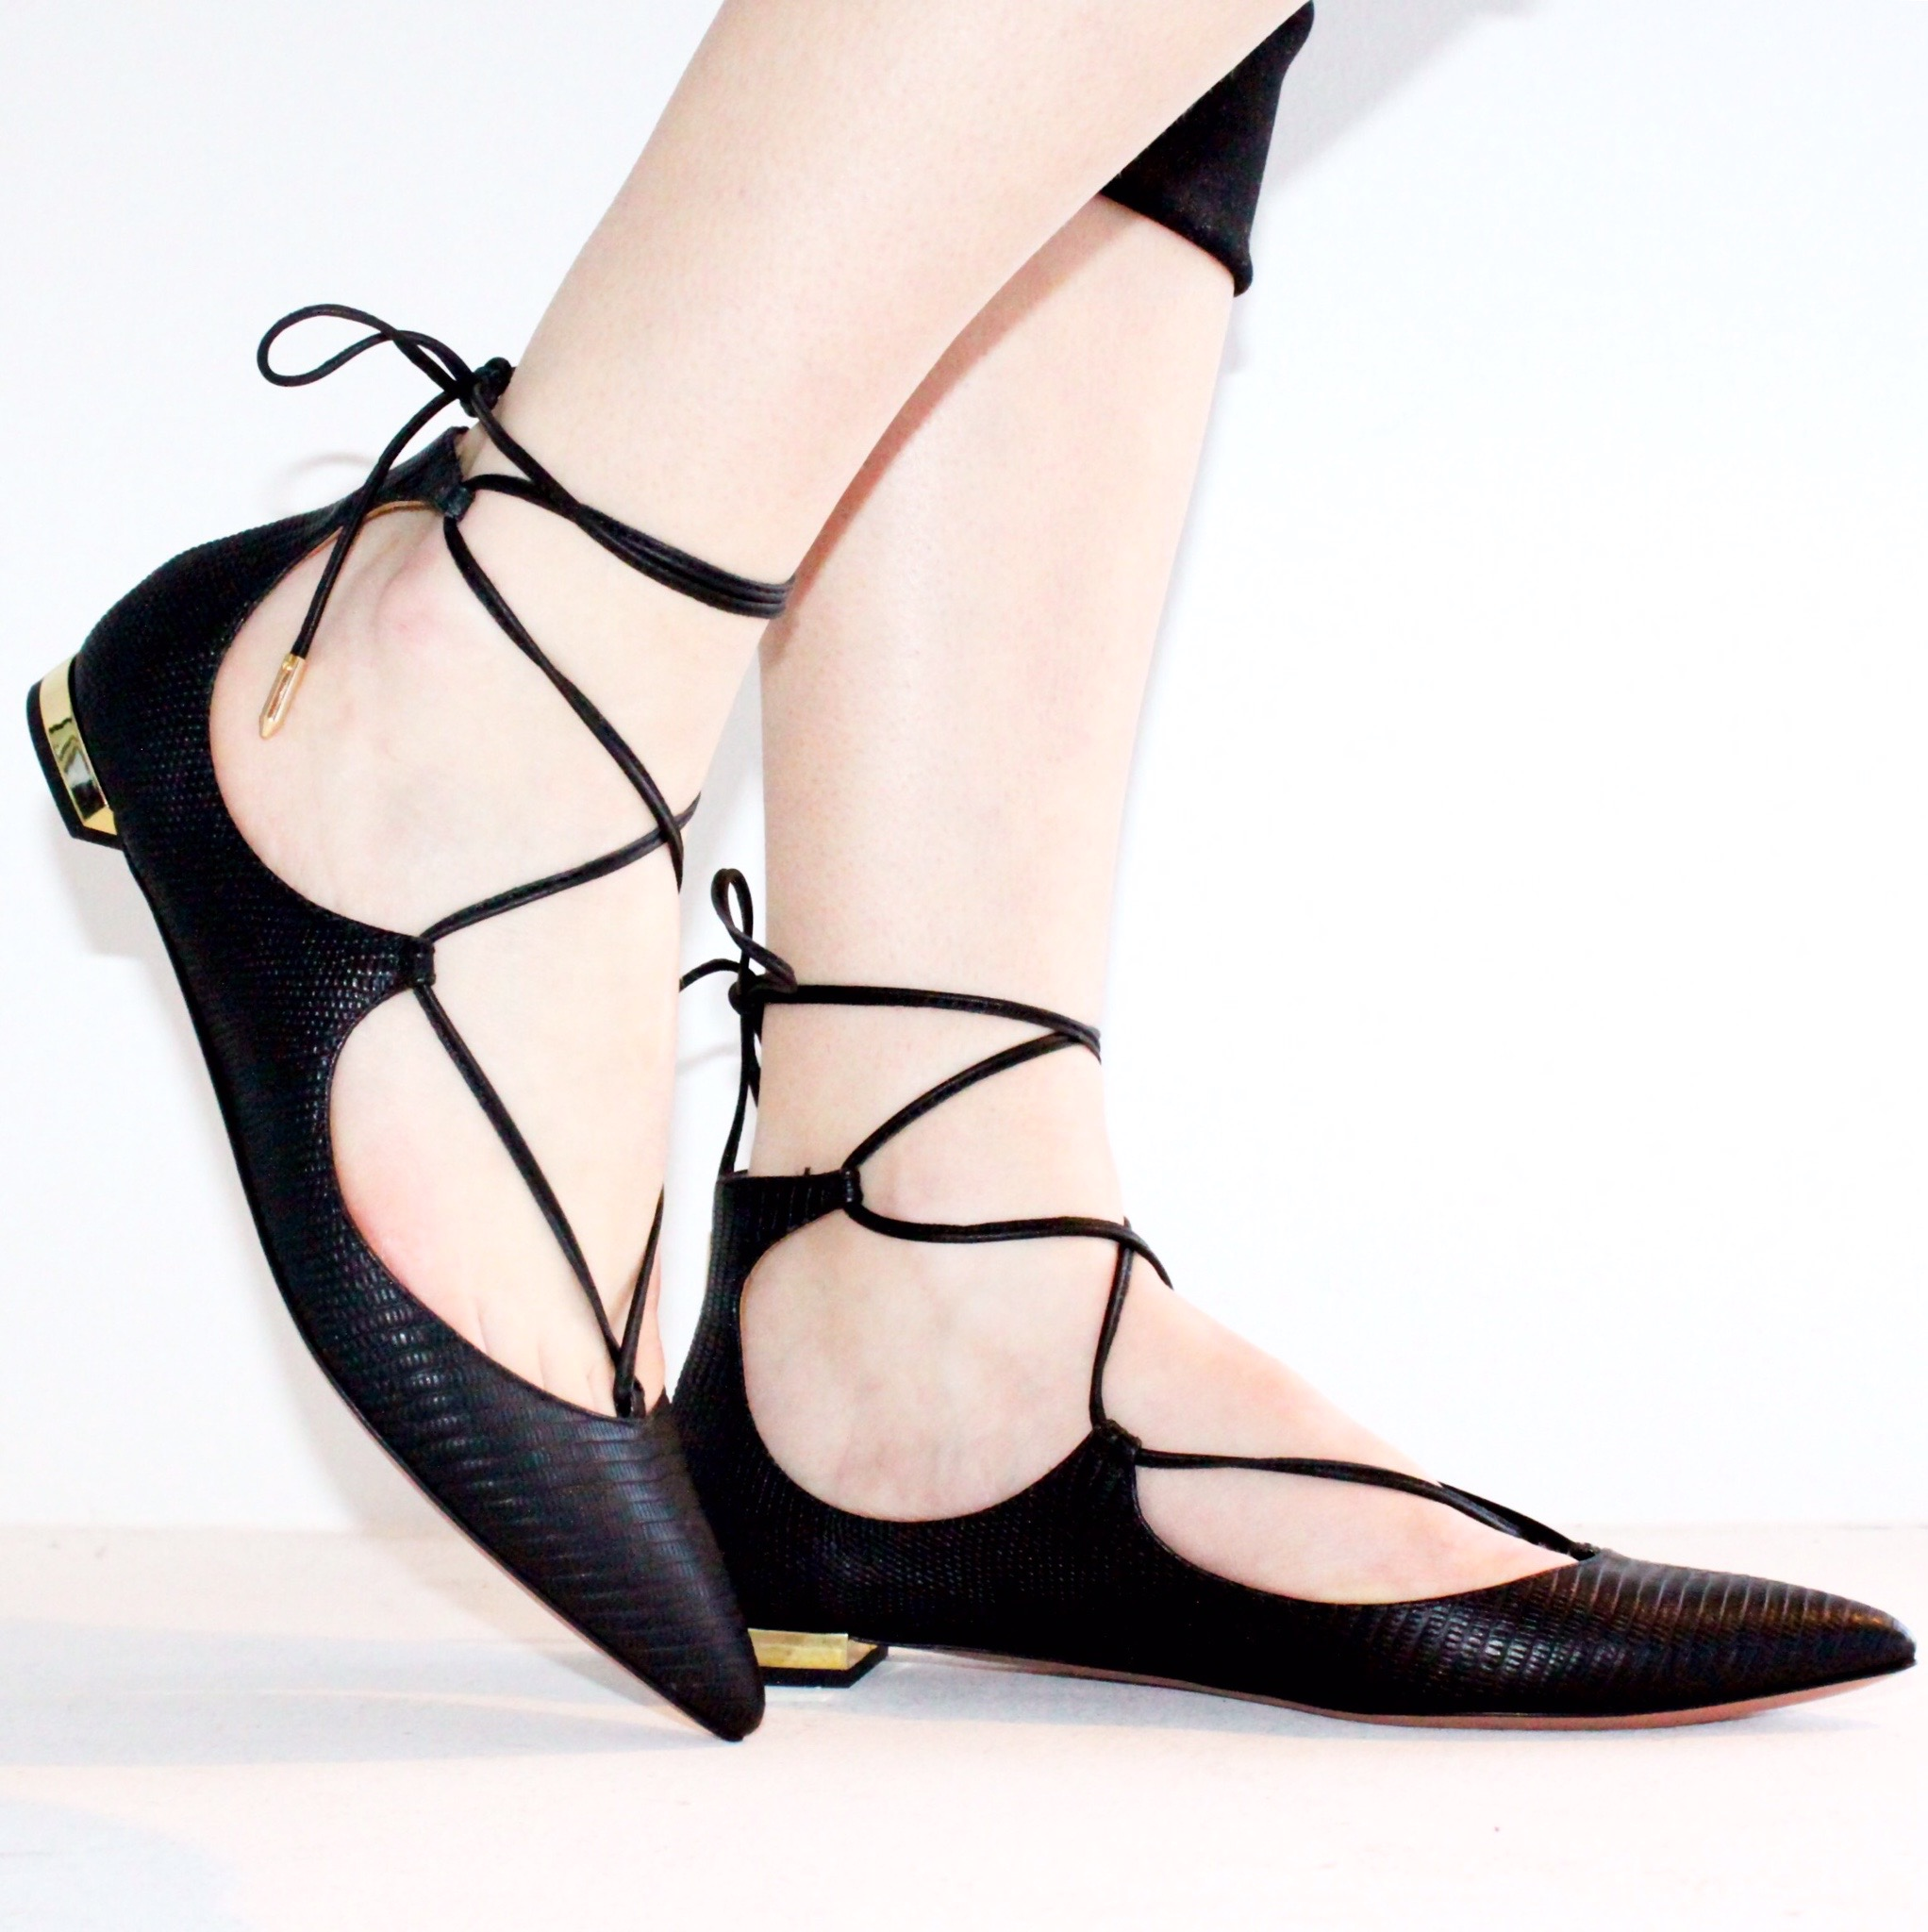 Aquazurra Lace Up Flats, $685.